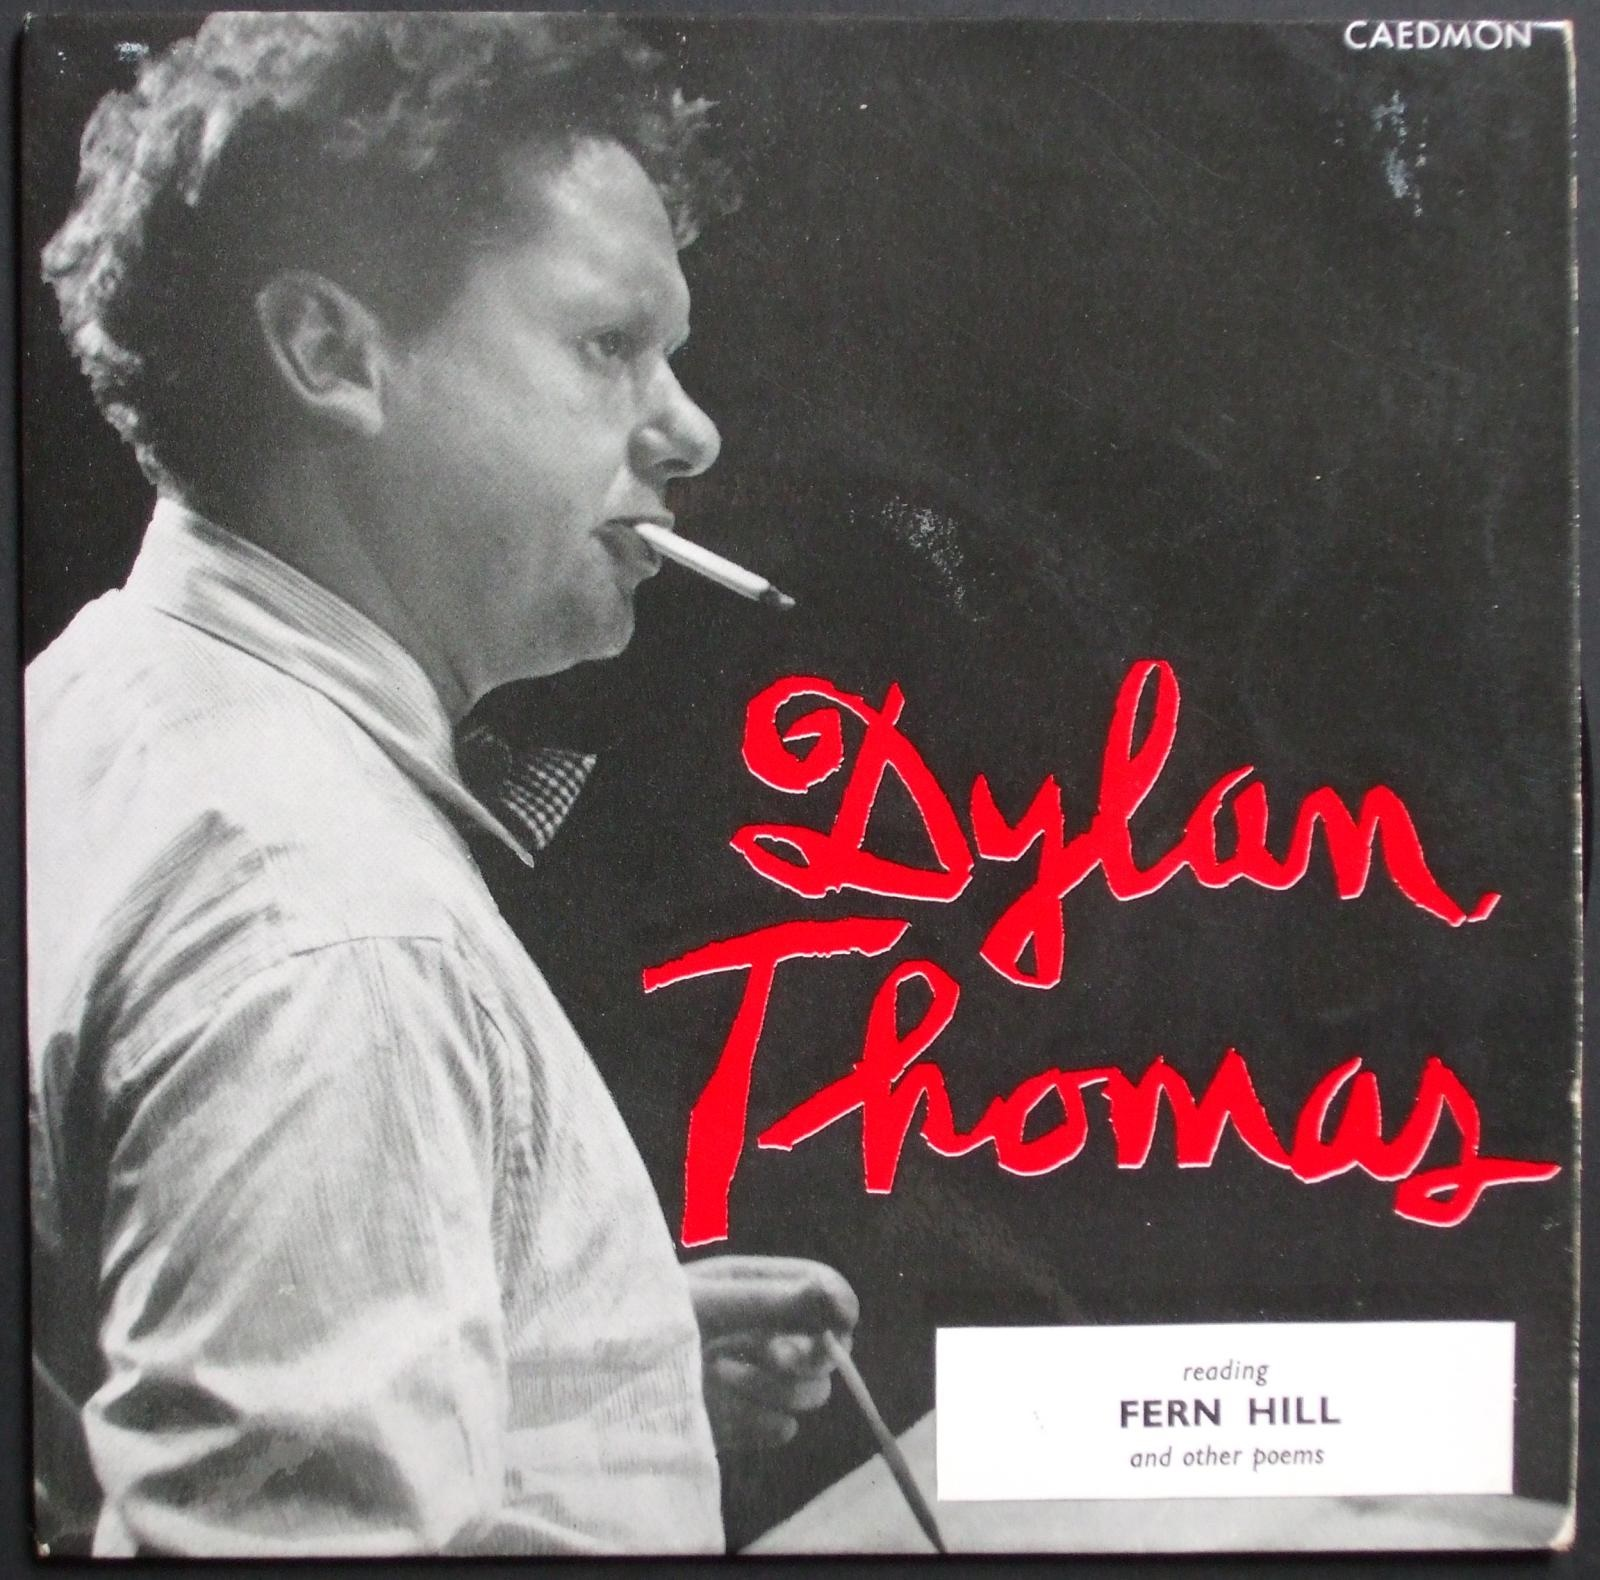 Dylan Thomas - why is it cooler to learn coding than poetry writing - motherdistracted.co.uk